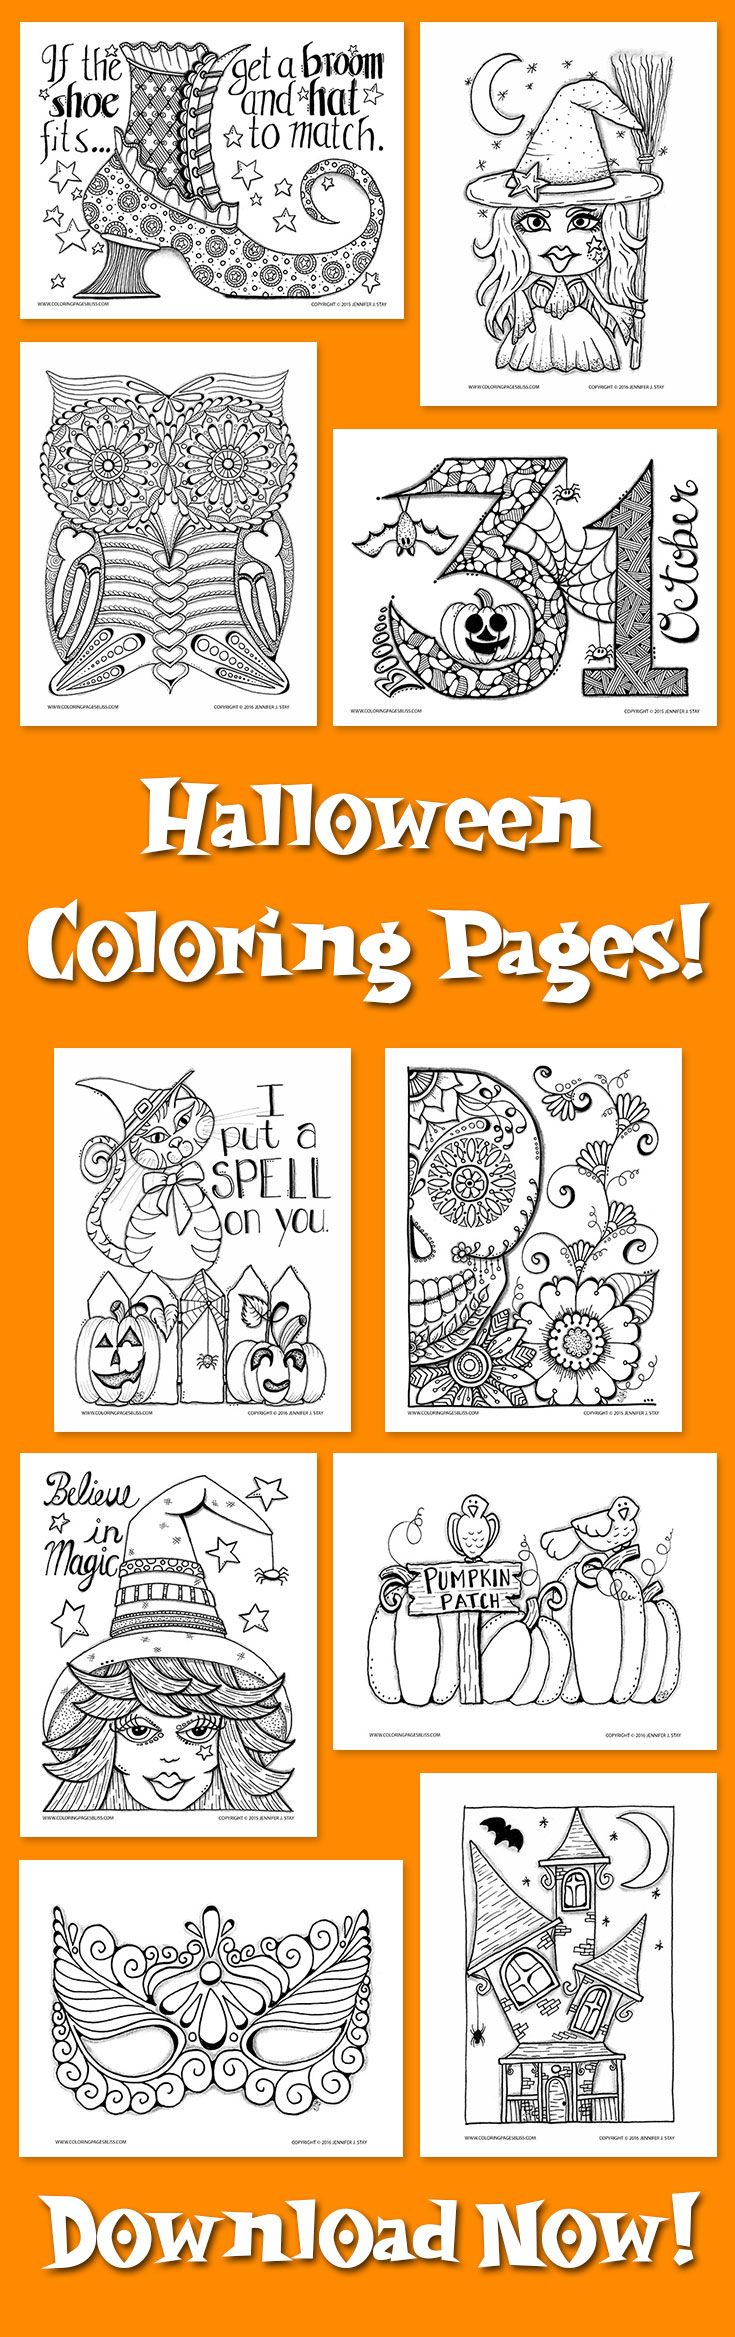 538 Best Adult Coloring Pages Images On Pinterest